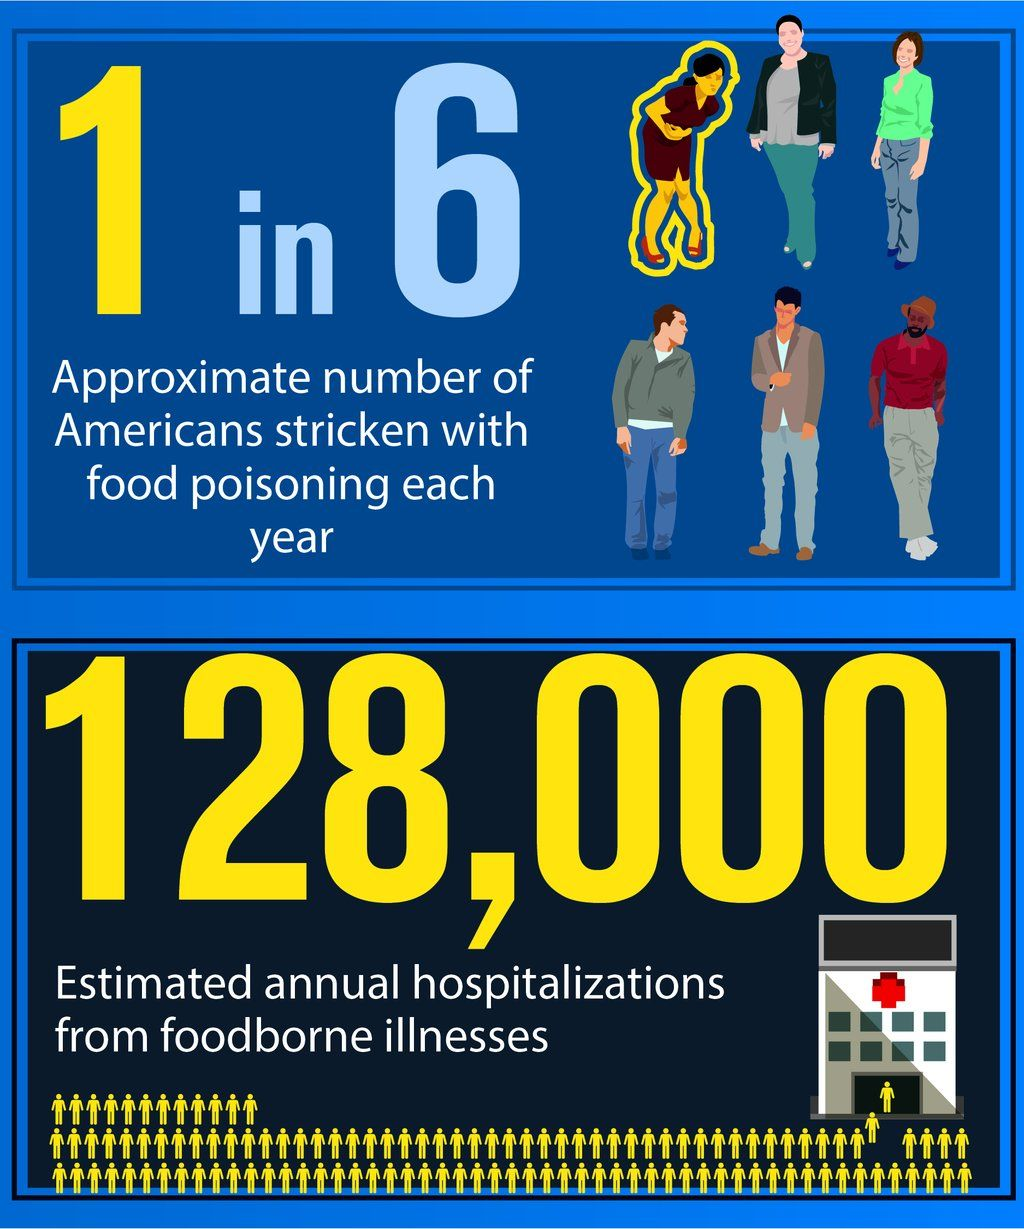 1 in 6 American will get food poisoning each year. Food